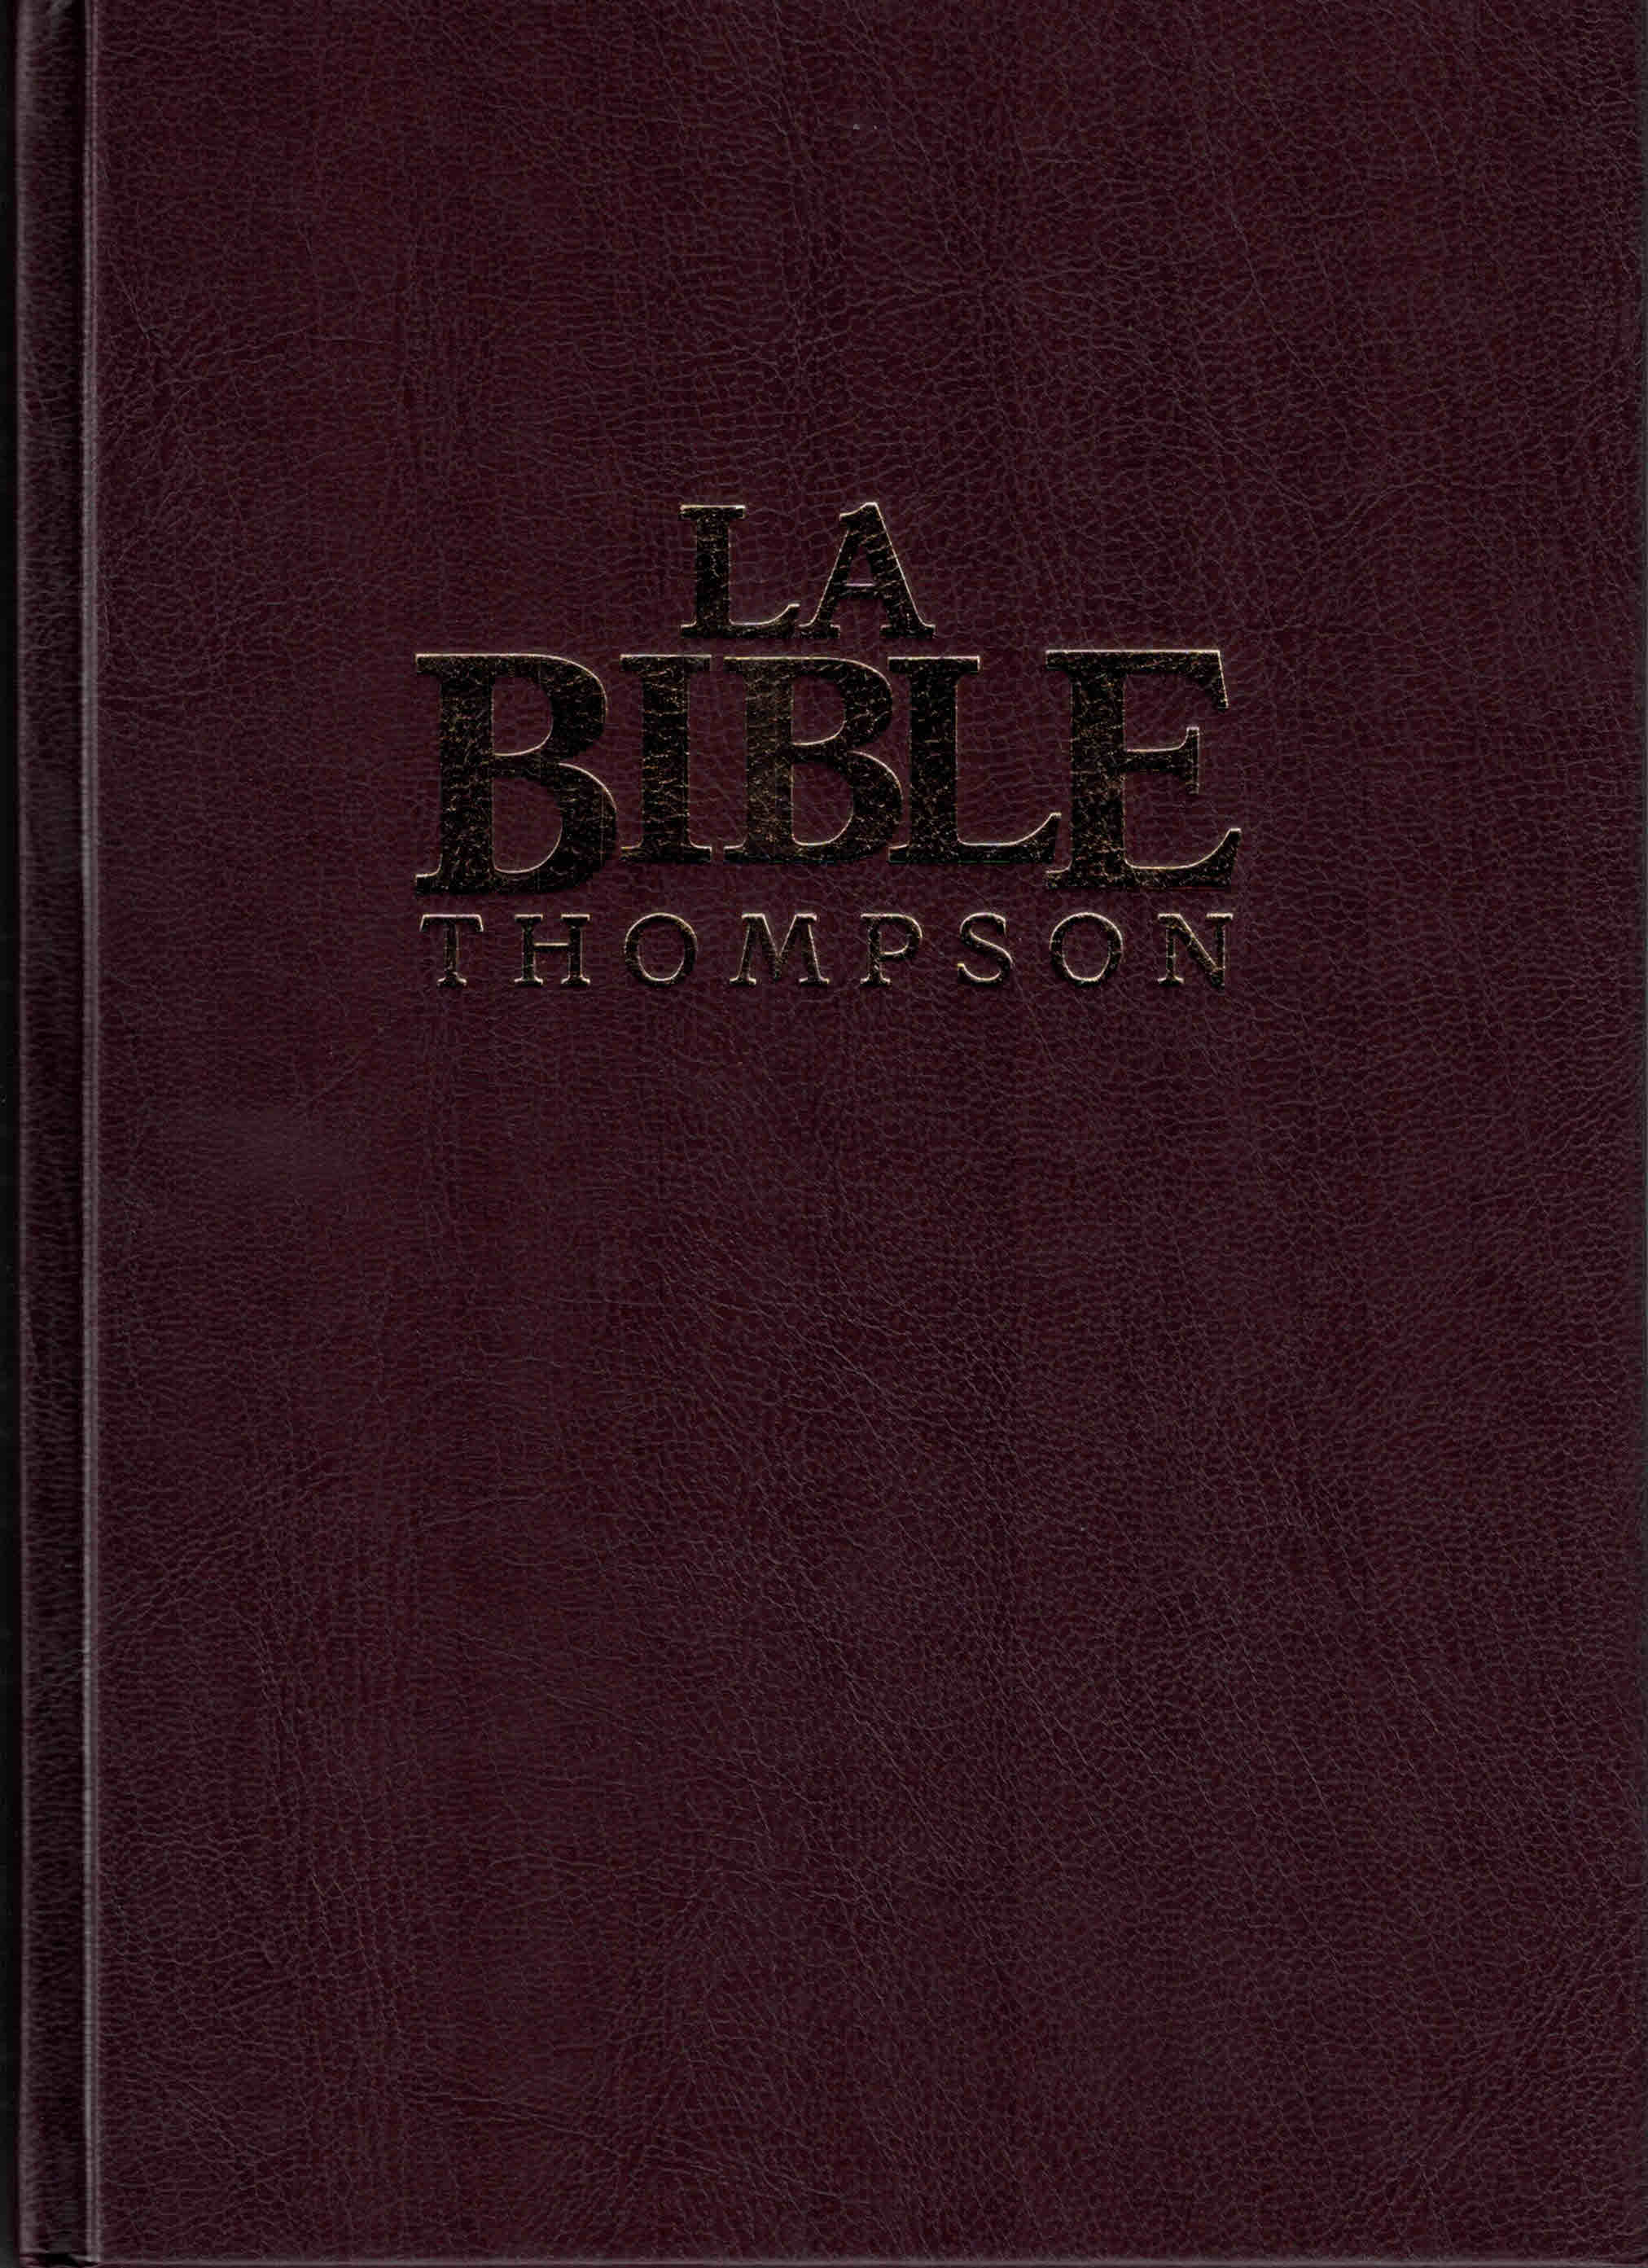 Bible d'étude Thompson